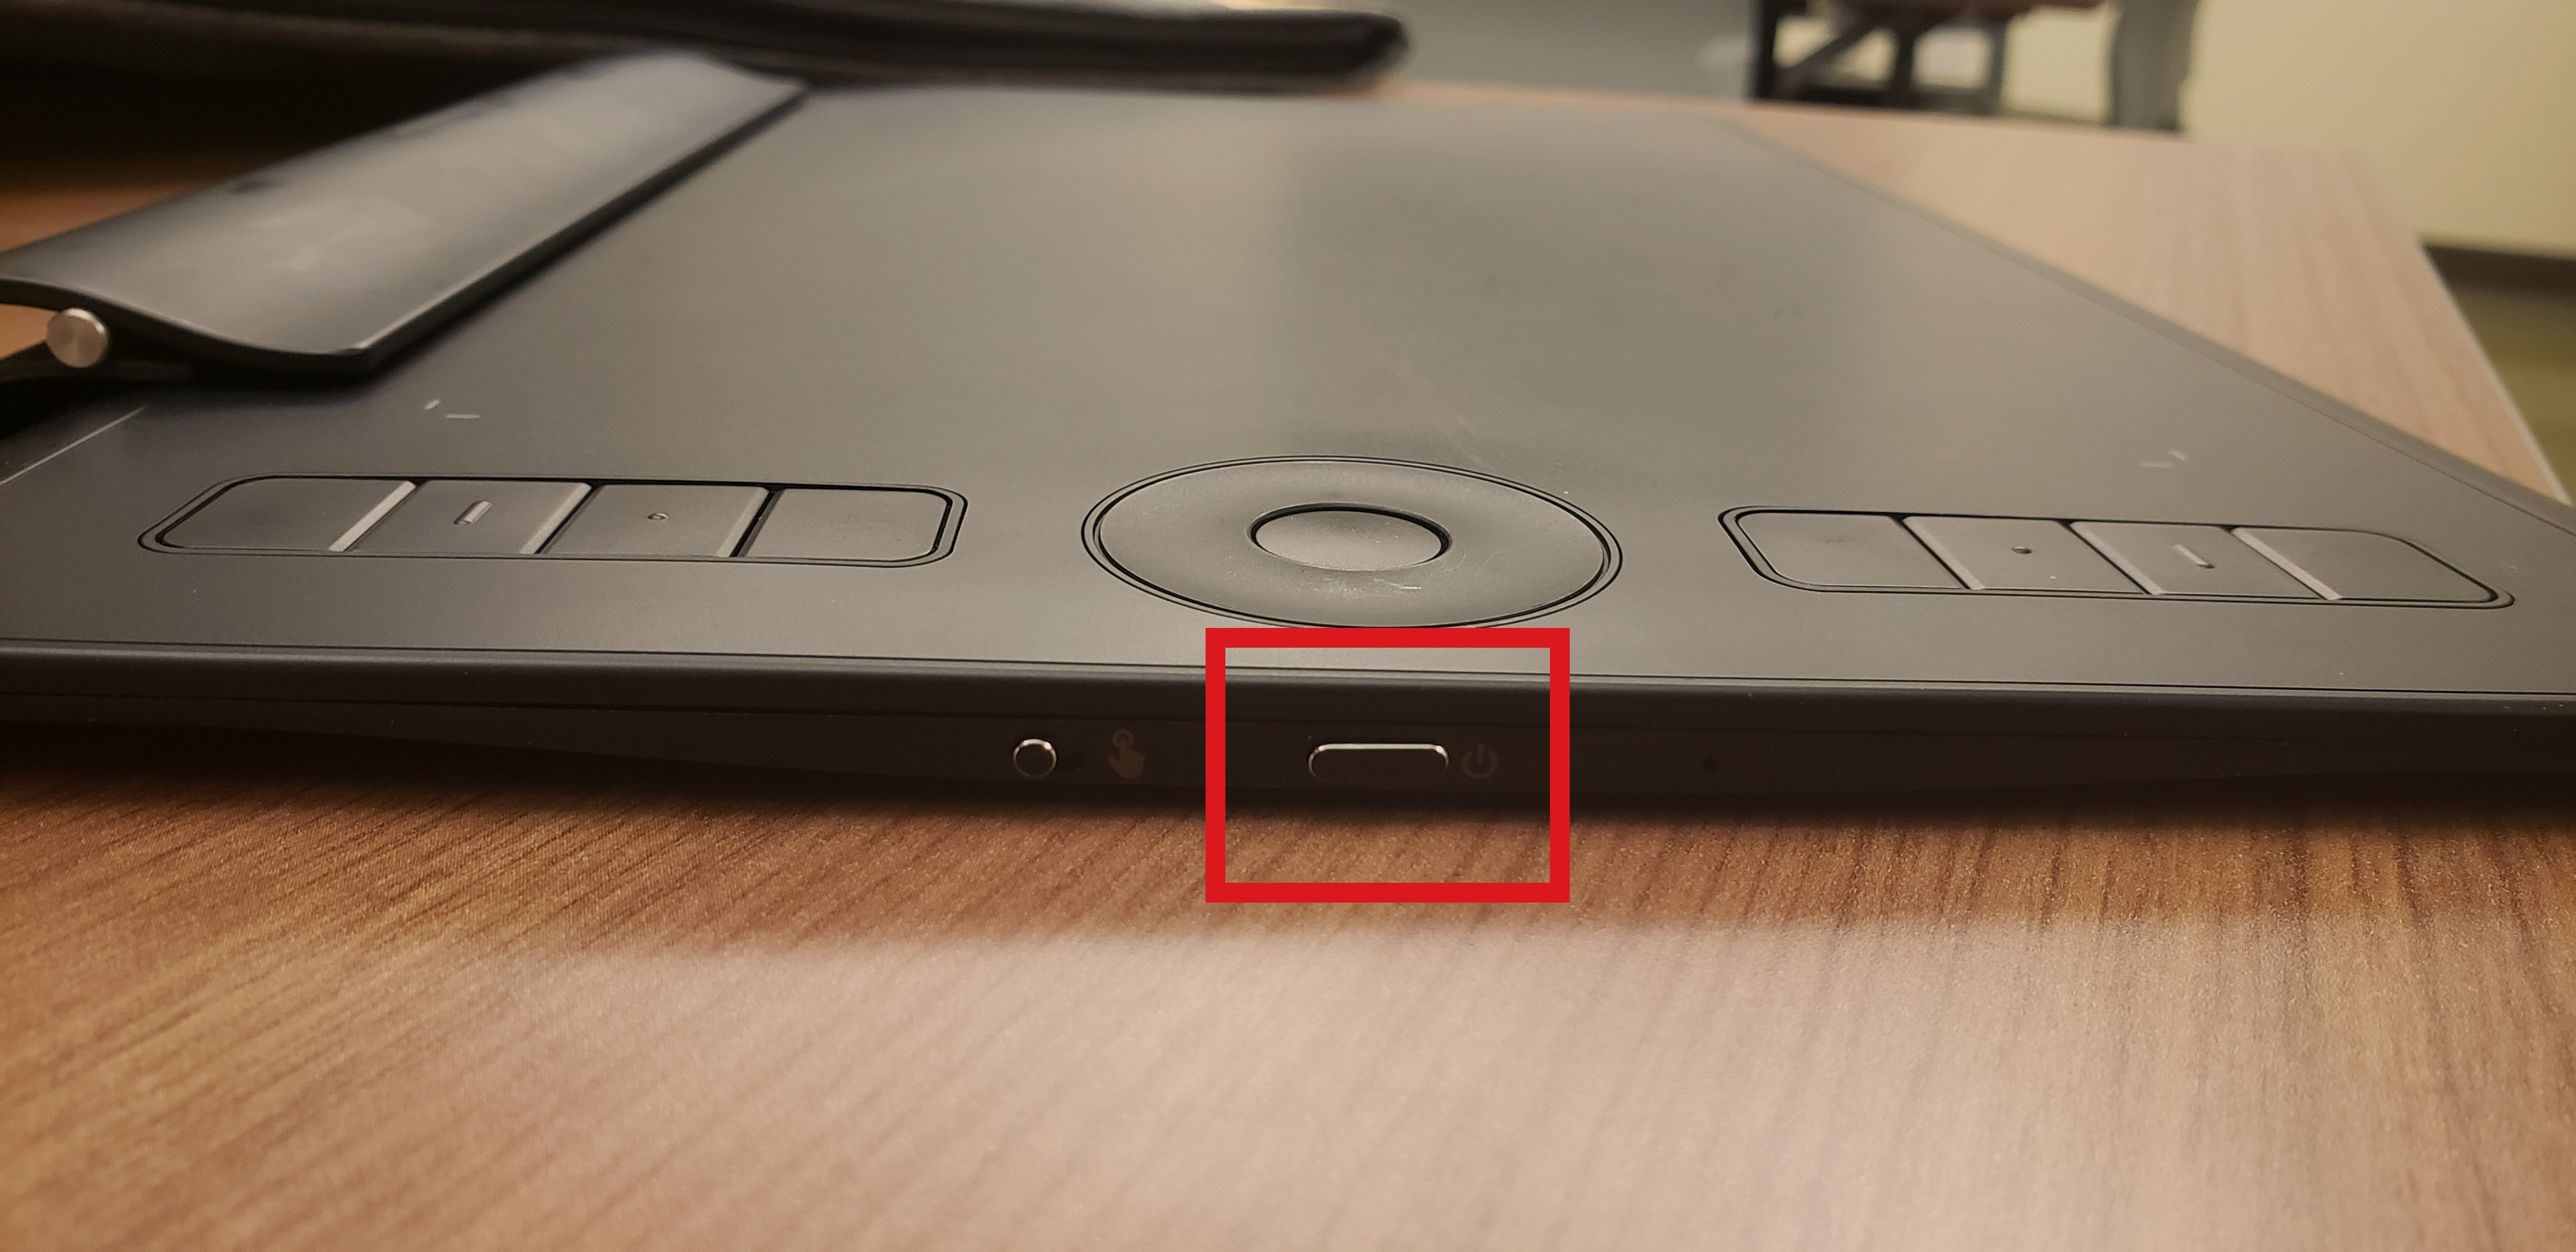 The power button on the left side in a red square